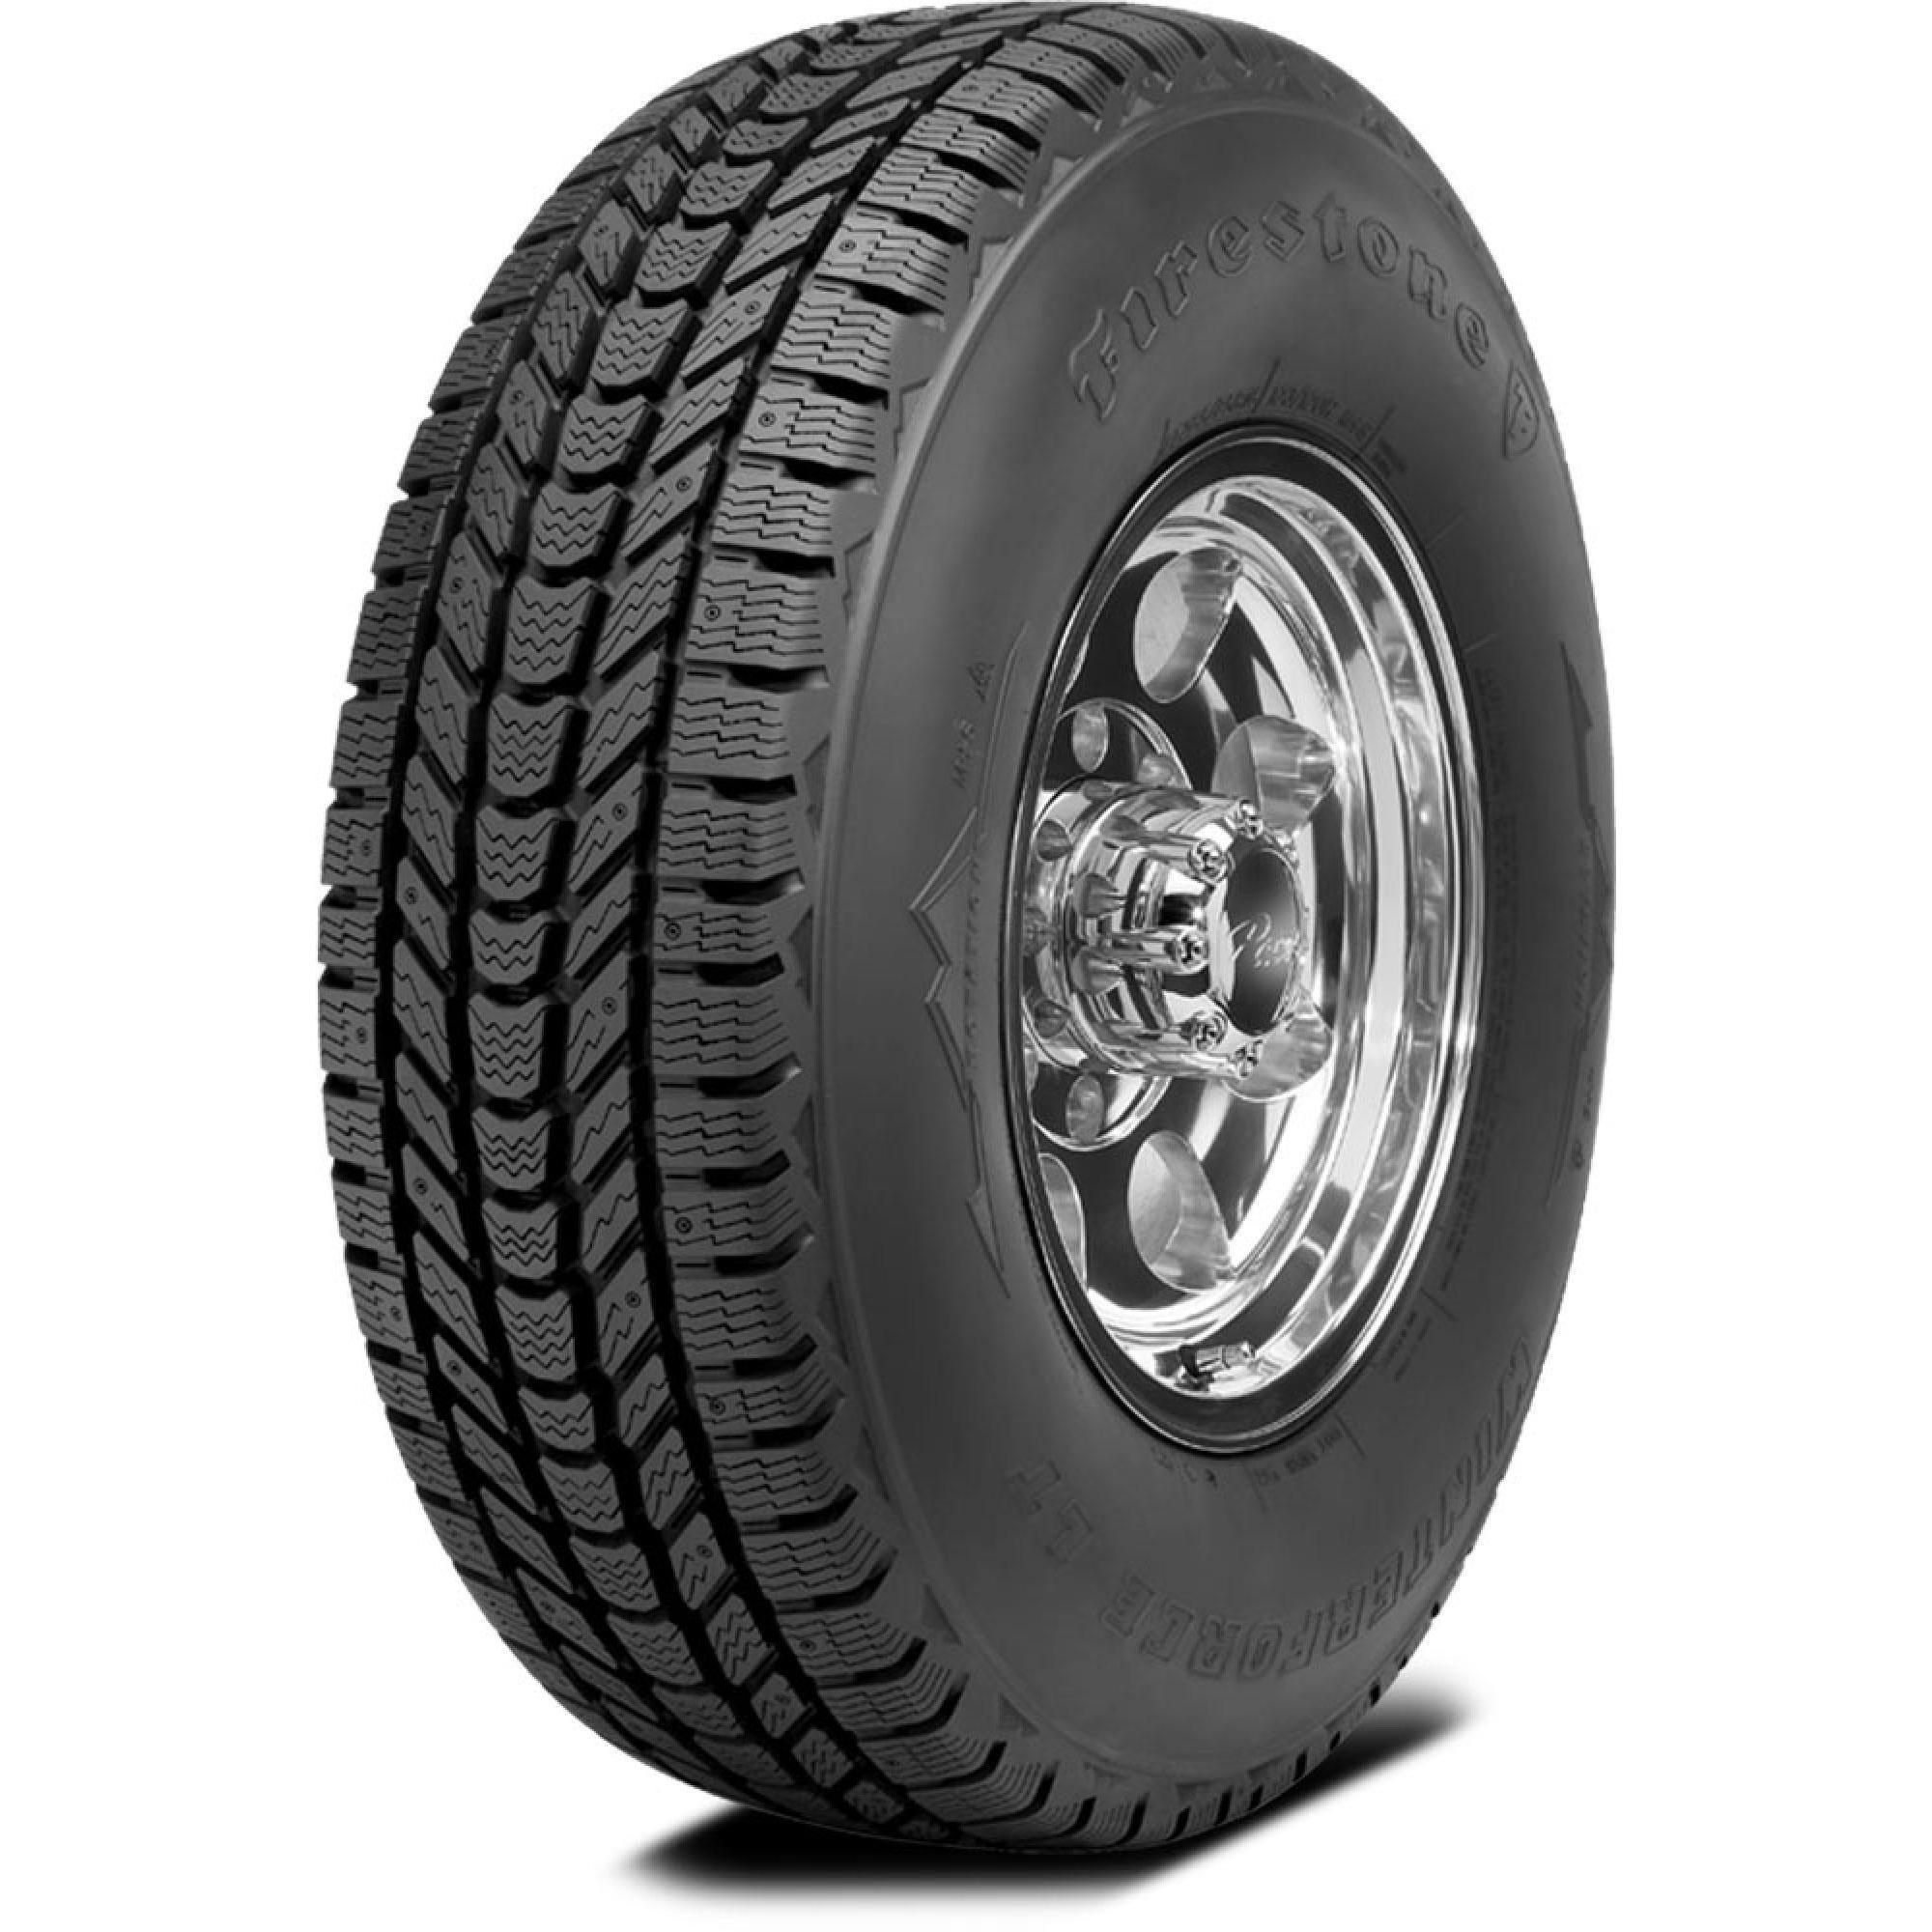 Firestone Winterforce Tires >> Firestone Winterforce LT | TireBuyer